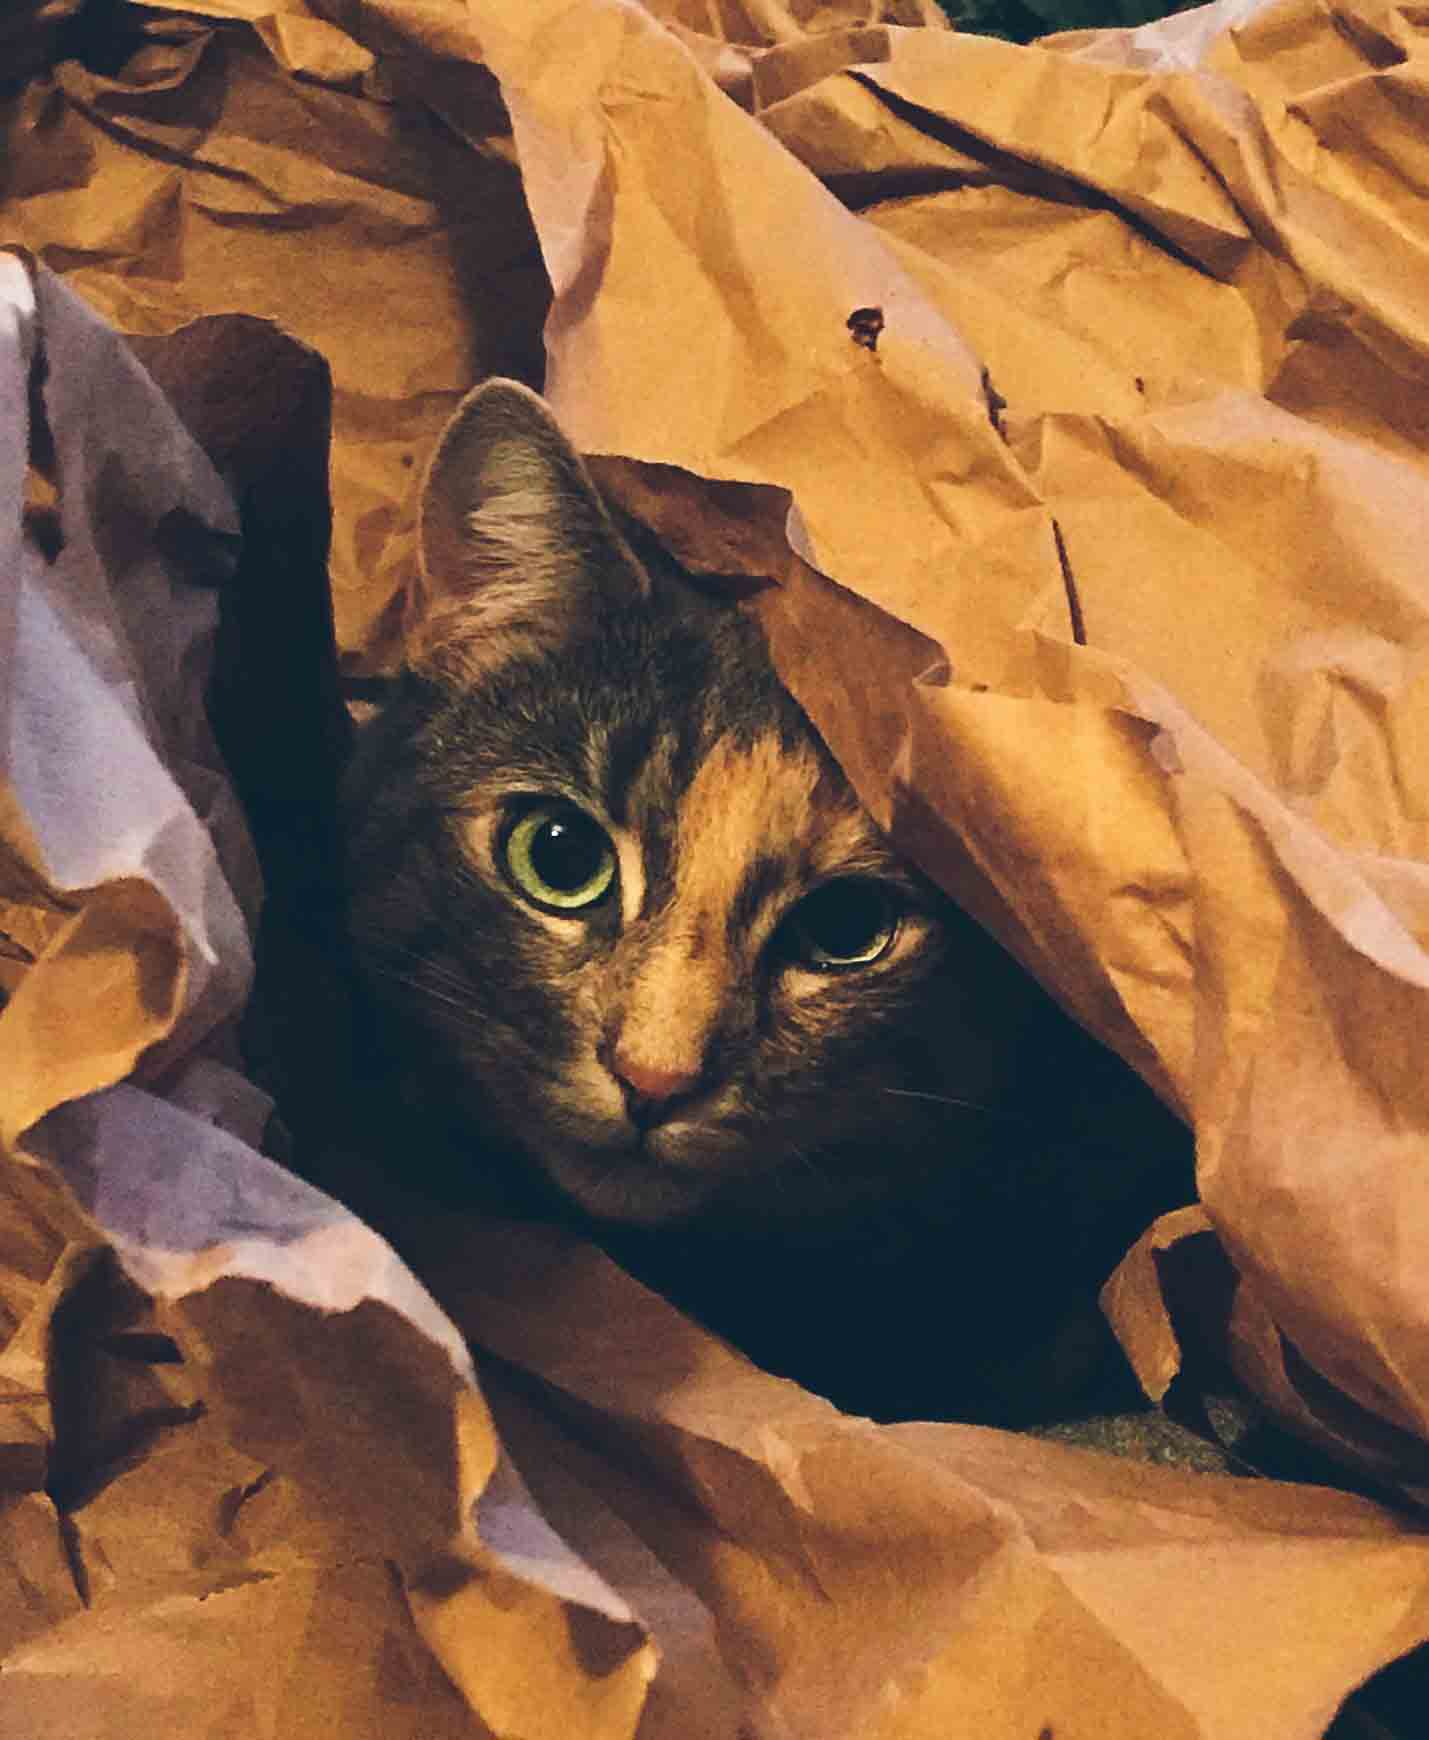 Cat in Favourite Toy of Crinkle Paper.jpg